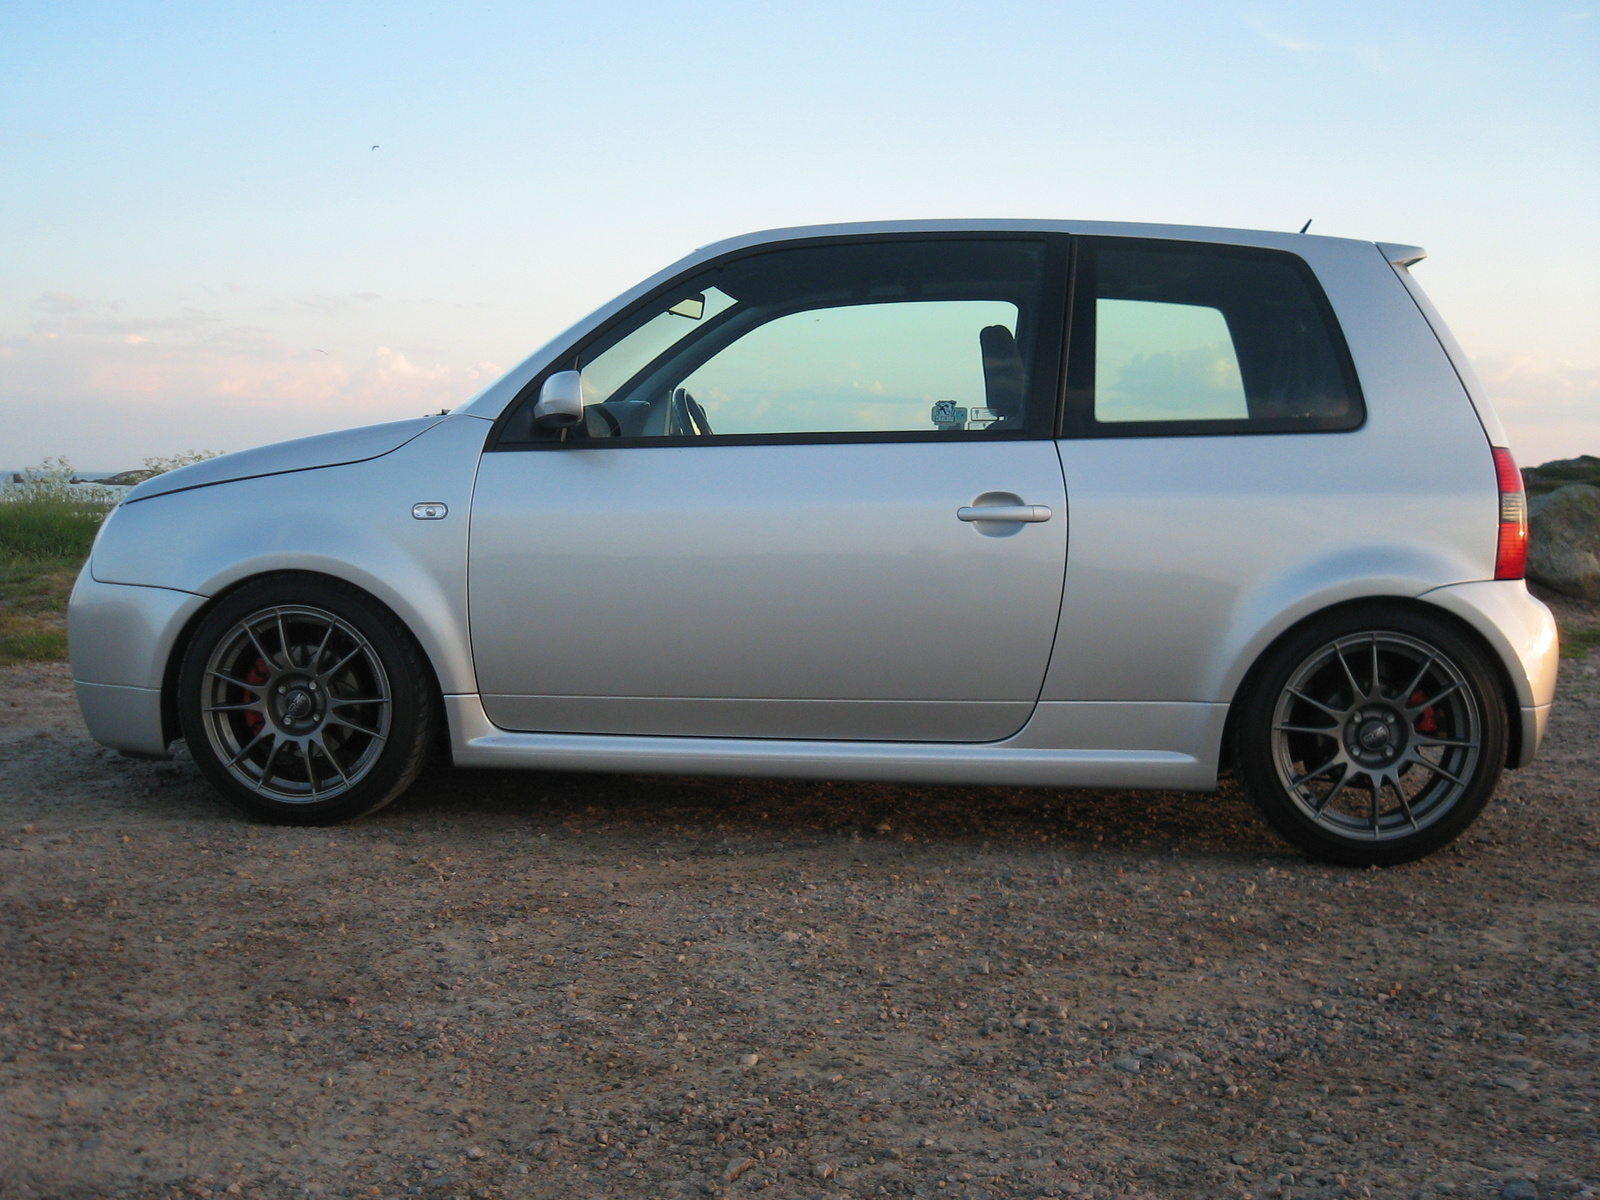 Volkswagen Lupo 2002 photo - 3